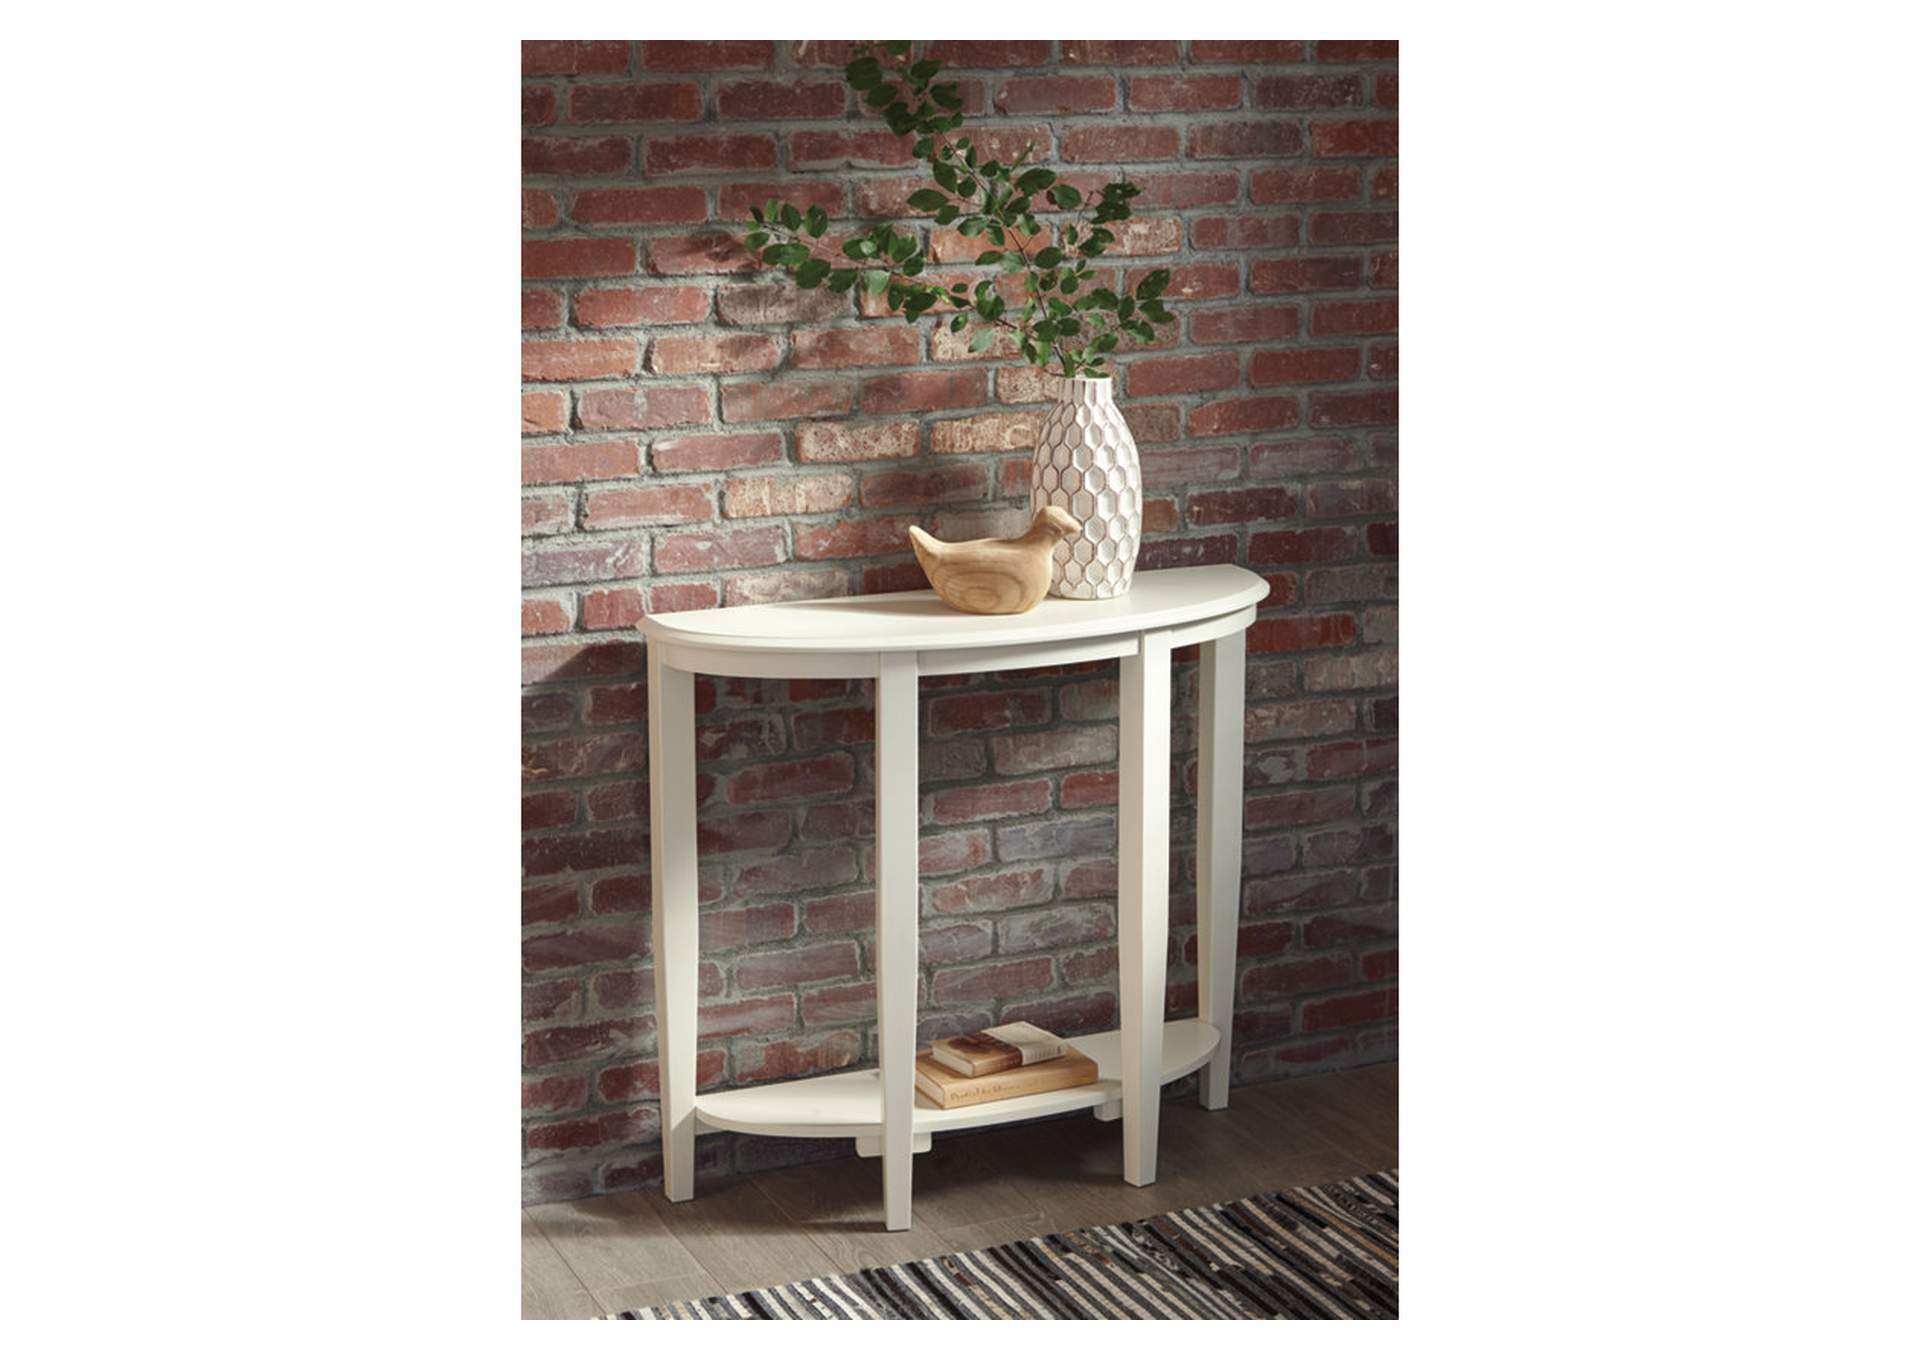 Altonwood White Sofa Table,Signature Design By Ashley